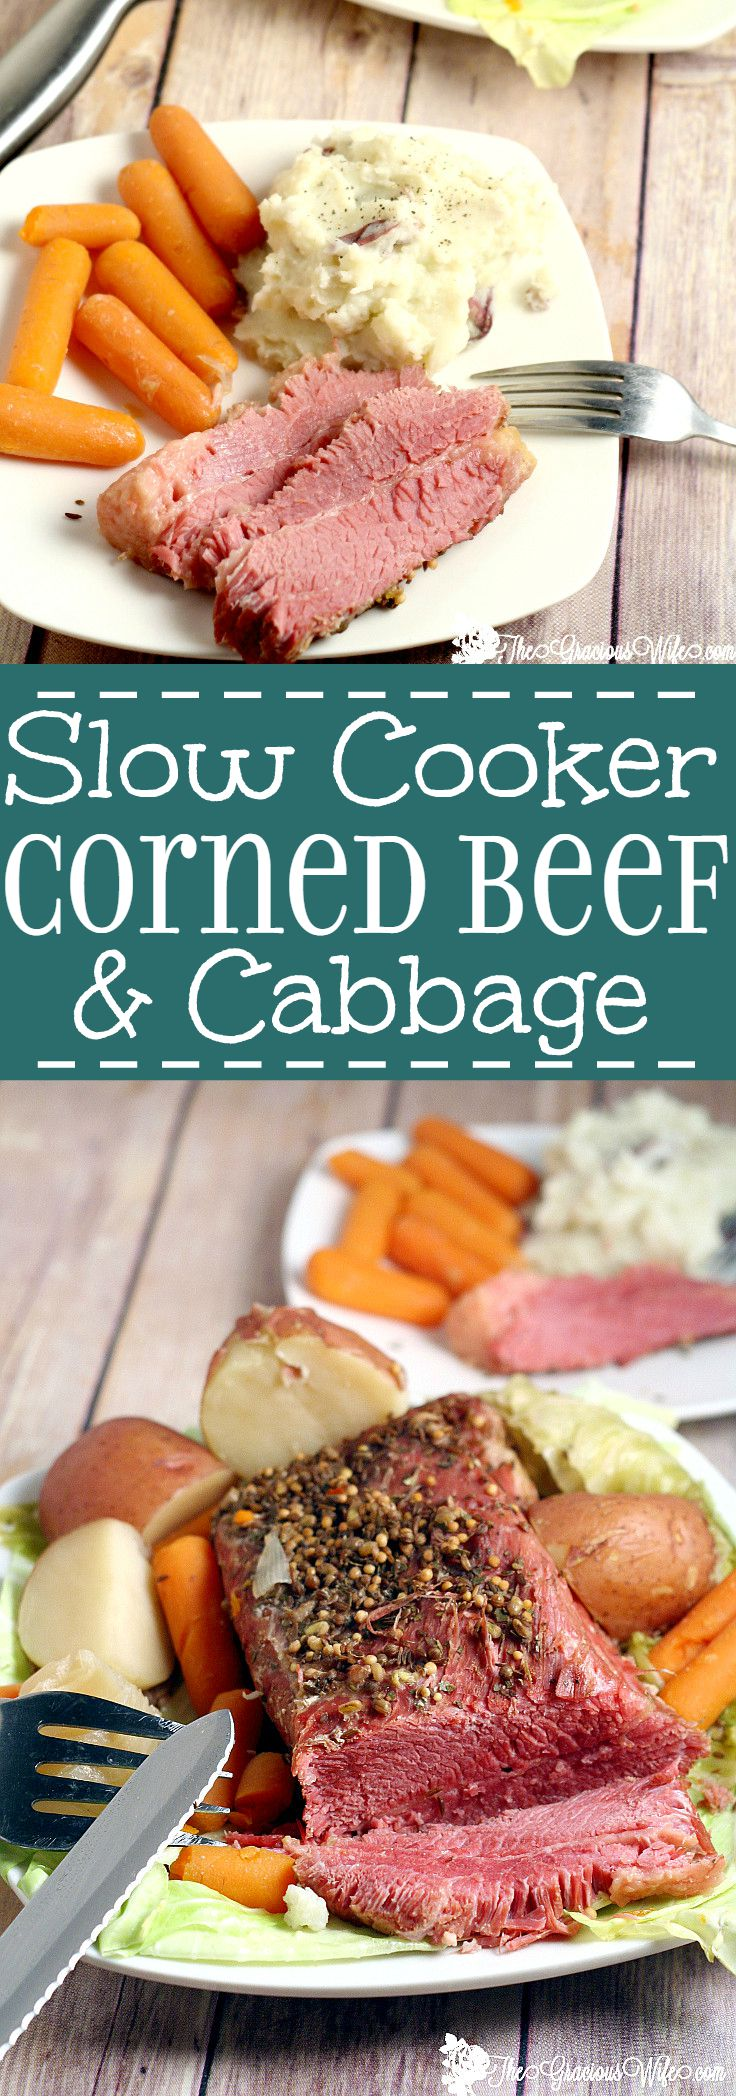 Slow Cooker Corned Beef And Cabbage The Gracious Wife